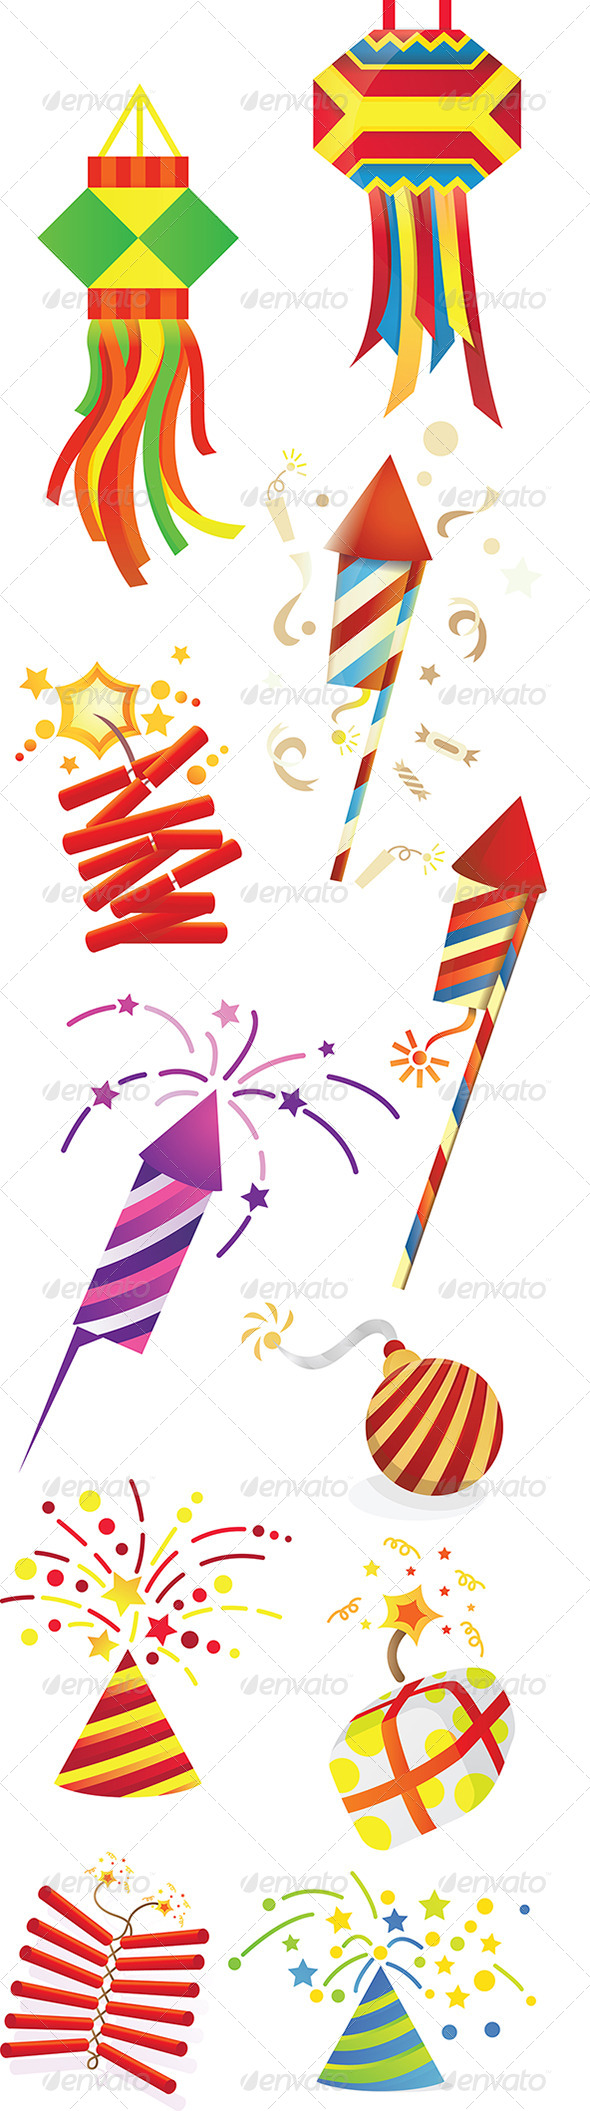 GraphicRiver Celebration Decoratives 4872165